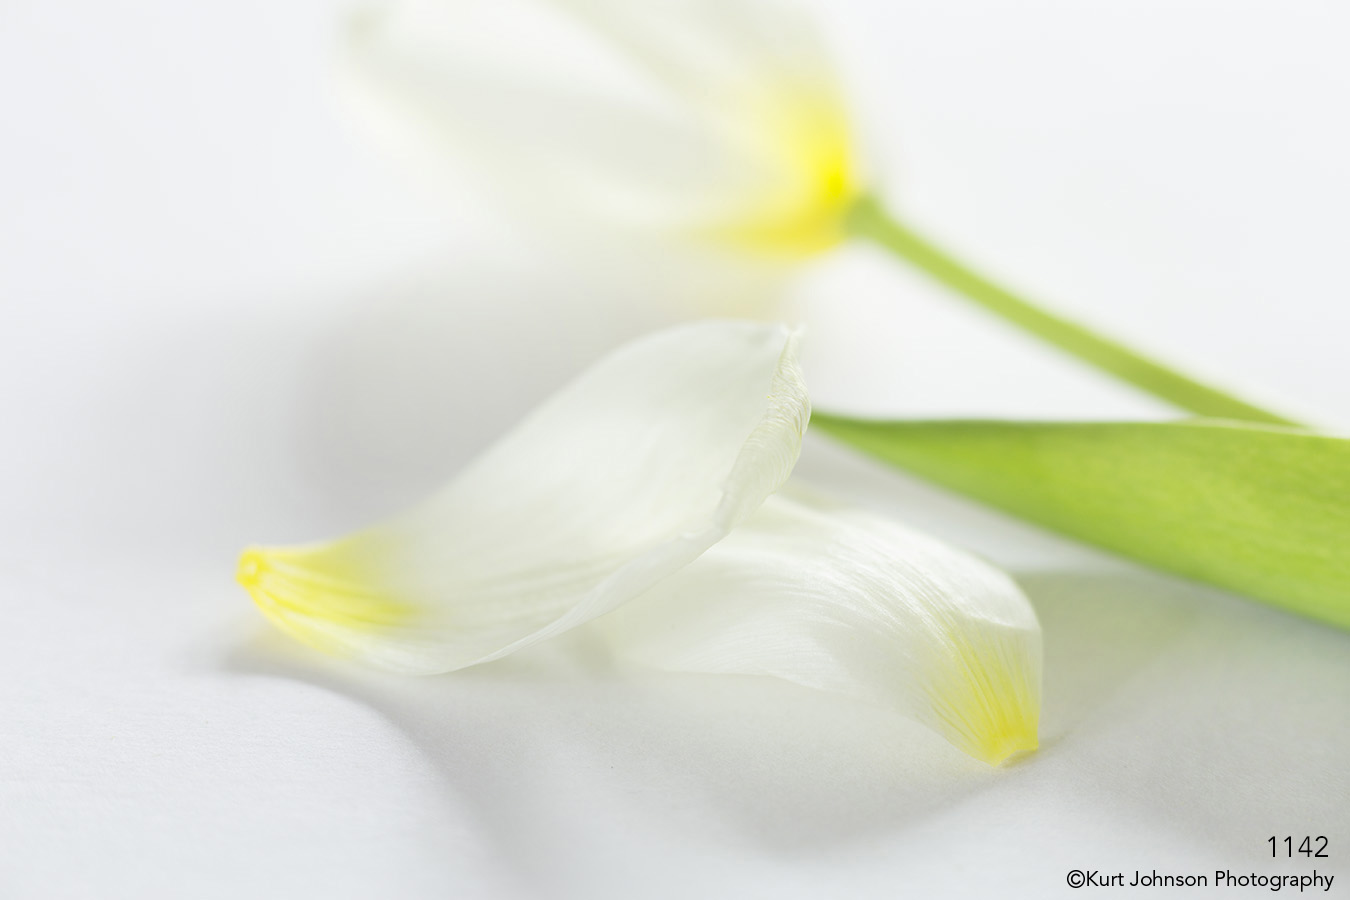 flower white petals green leaves abstract